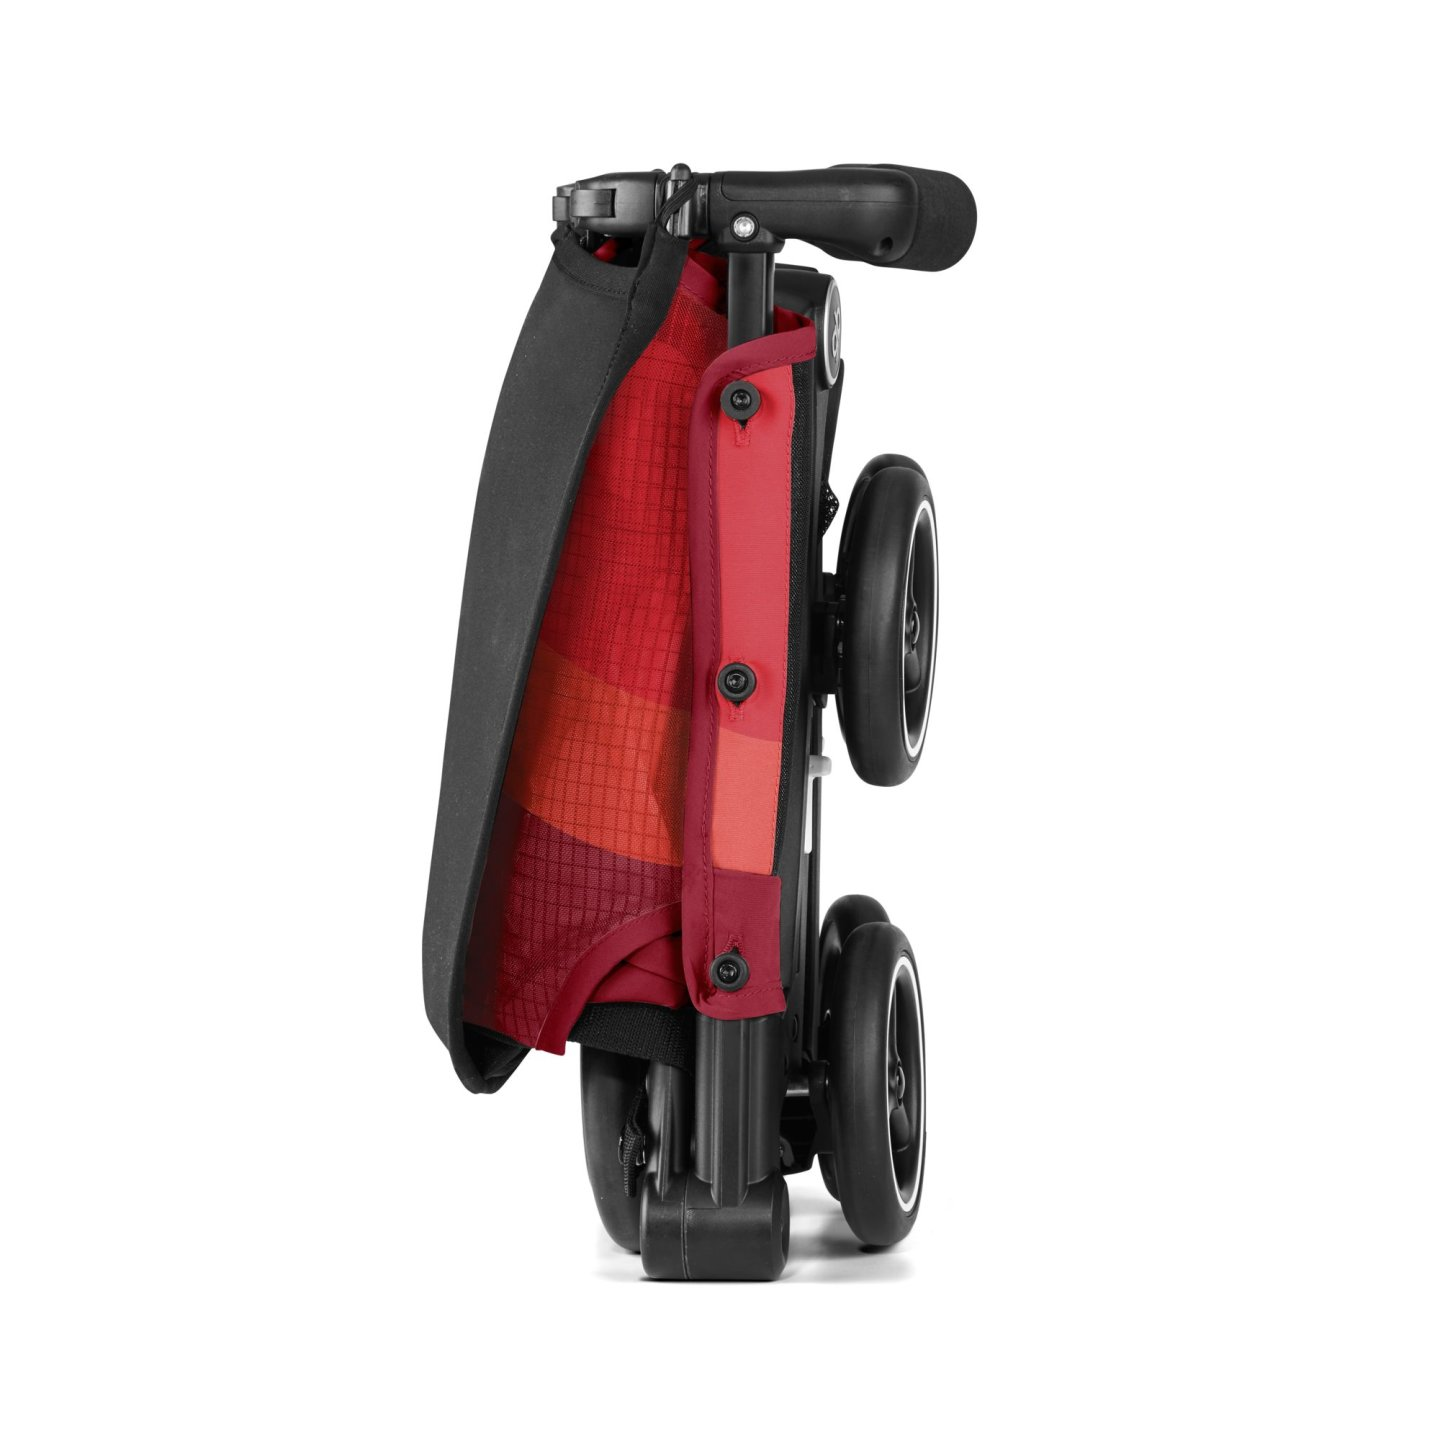 //images.gb-online.com/q_85,dn_72,h_1440/gbo/product-Pockit-Air-All-Terrain-Rose-Red-SelfStanding-when-folded-8623-8617-8589_sftqpx